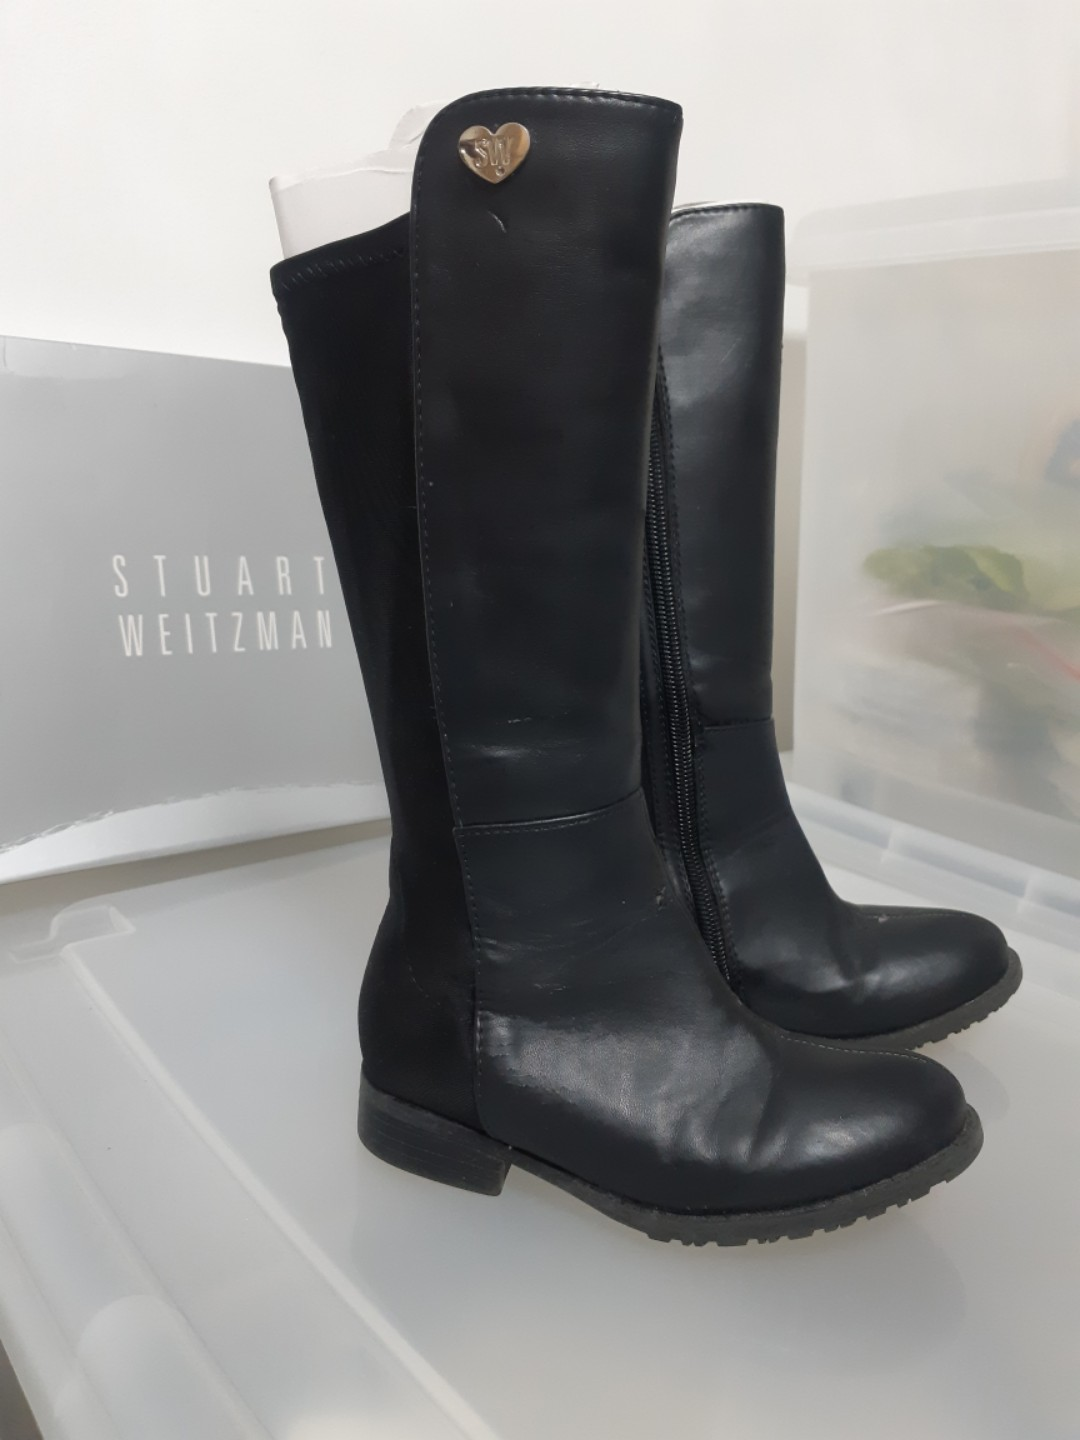 newest 5a178 a9696 Authentic Stuart Weitzman Kids Leather Boots